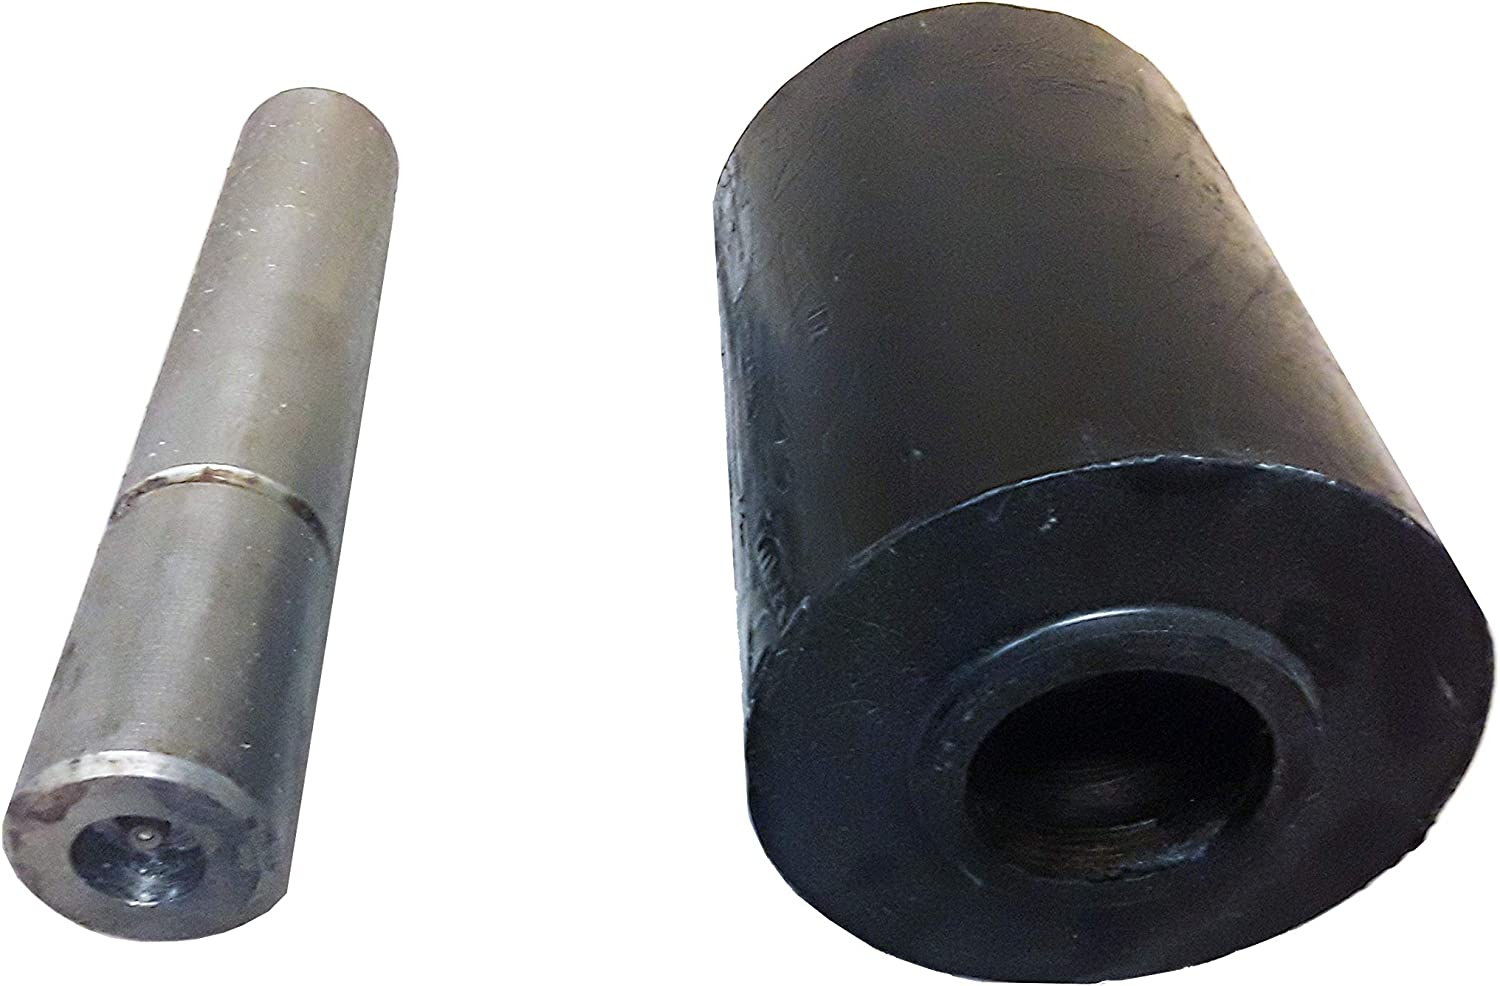 4 x 6 Nose Roller for Roll Off Containers 40,000 lbs Capacity